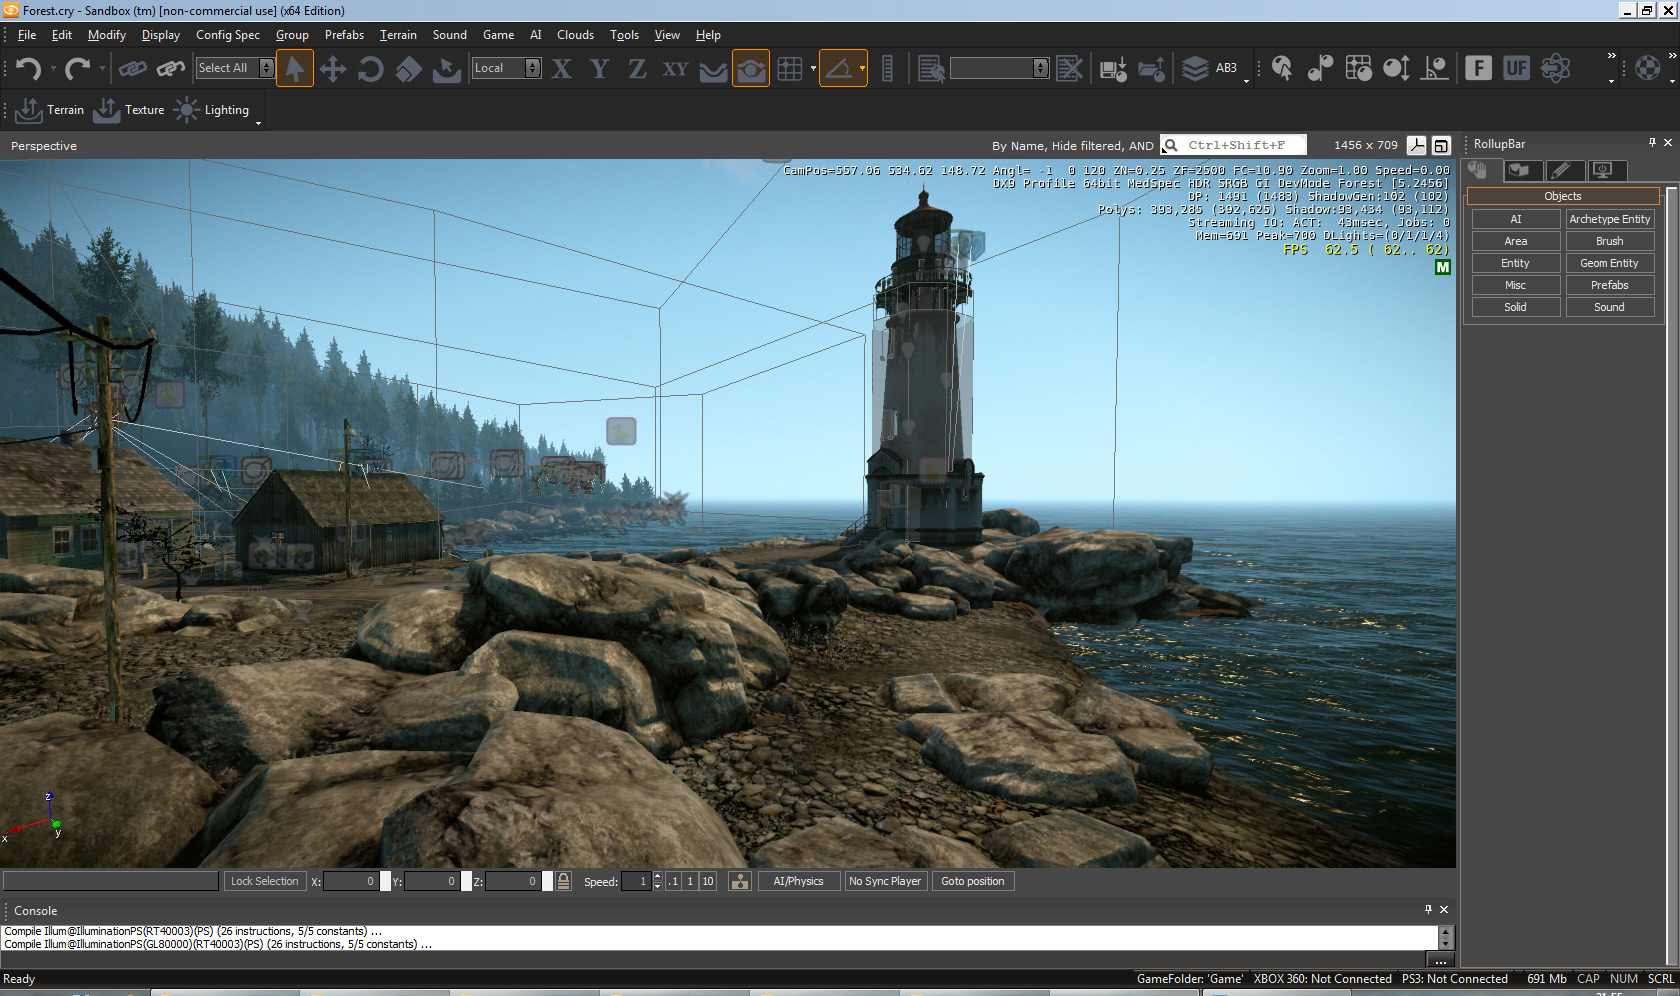 Ly/1xbaejw привет поисковикам! crysis 2 photozoom pro 2: a coreldraw plug-in to increase the size of digital images